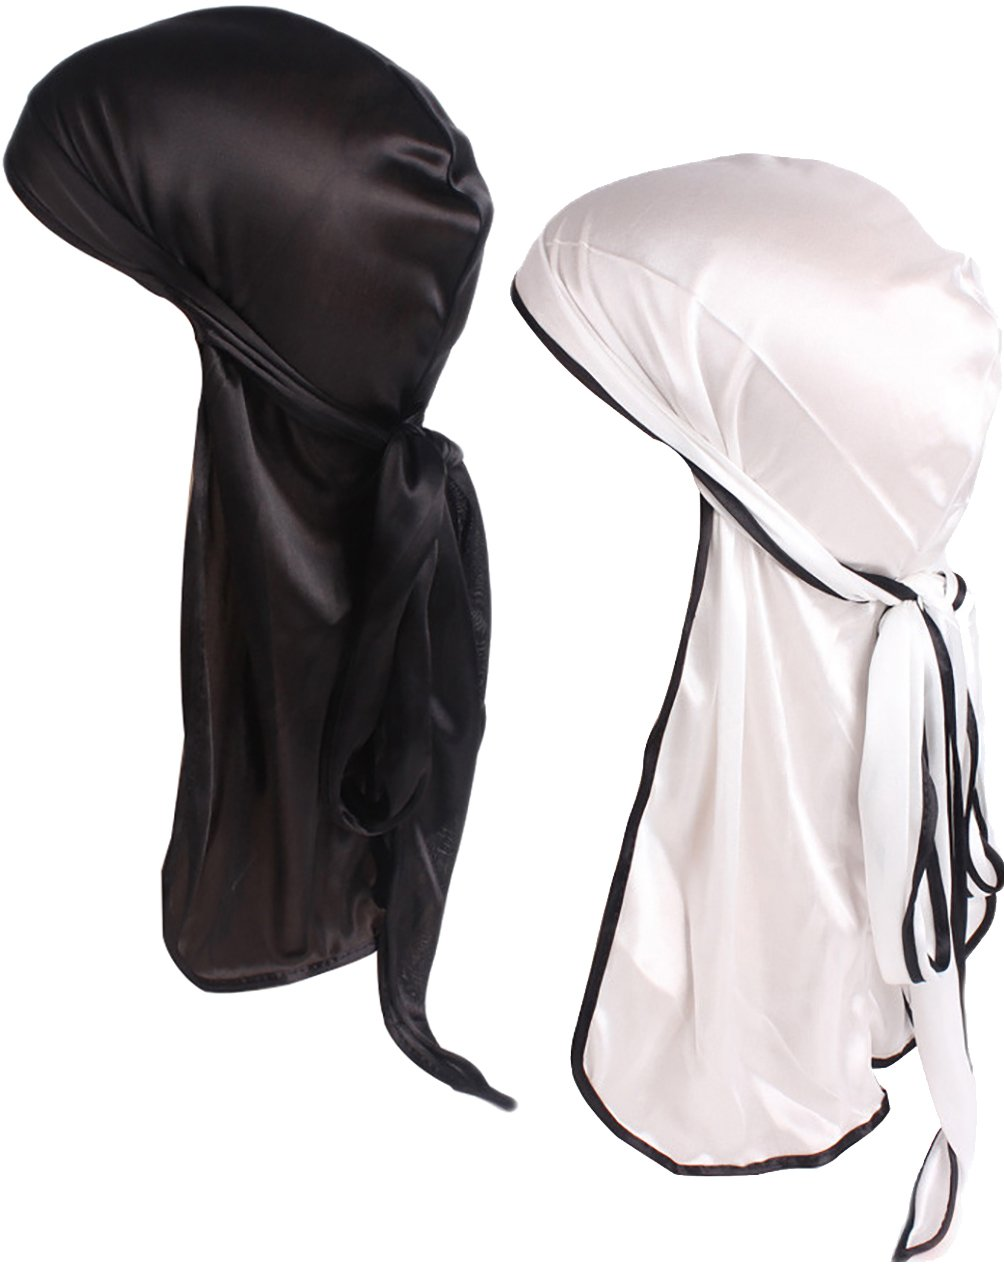 YI HENG MEI Men 2PCS/3PCS Silky Stretchable Durag Do Rag Bikers Hip Hop Pirate Hat YHMTJM-05A-05C Group 1(2pcs)